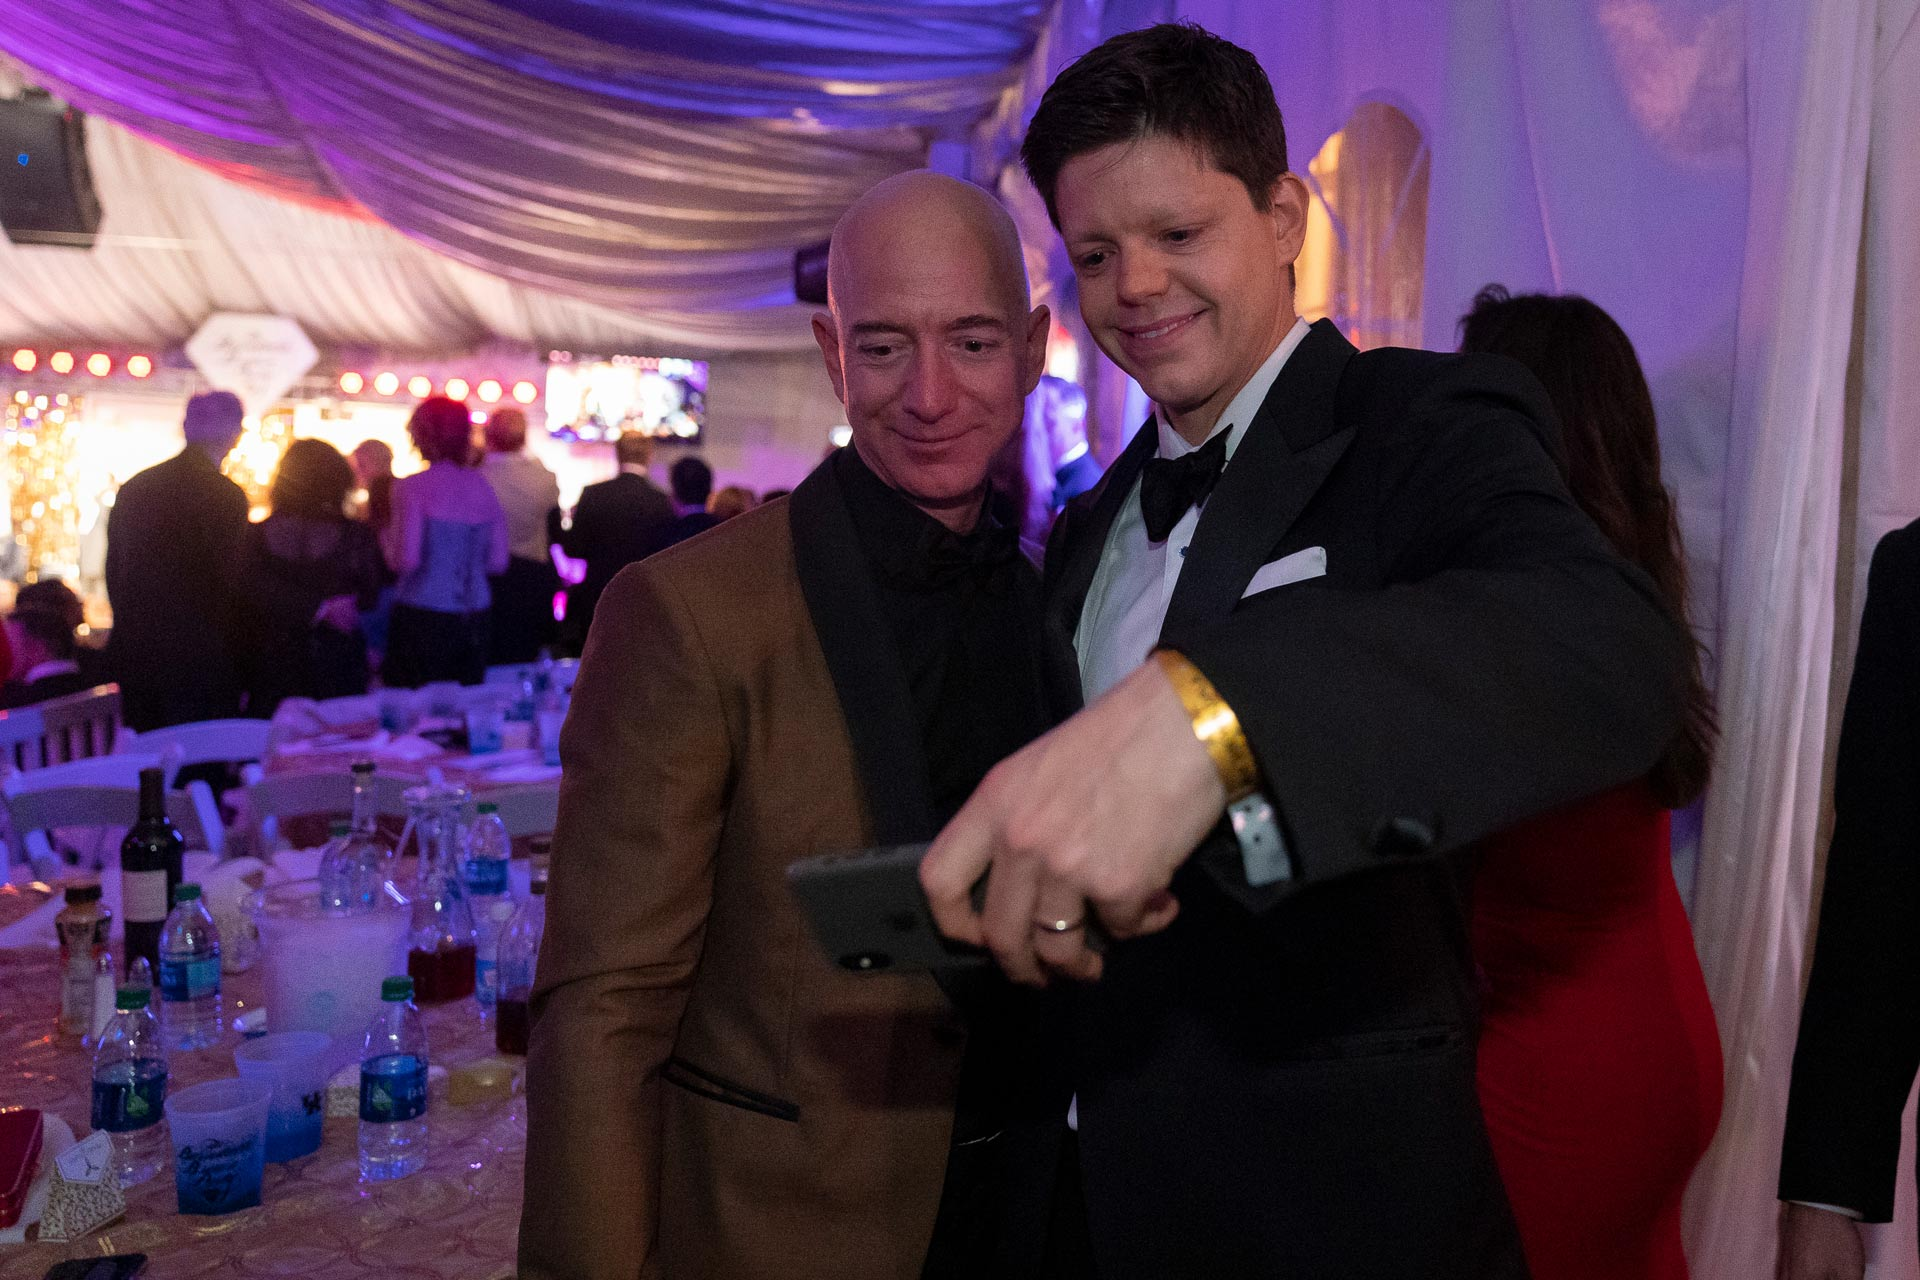 Jeff Bezos, a bald man in a brown and black suit, looks at a phone with Christopher Barnstable-Brown, a tall young man with brown hair, at the Barnstable Brown Gala.